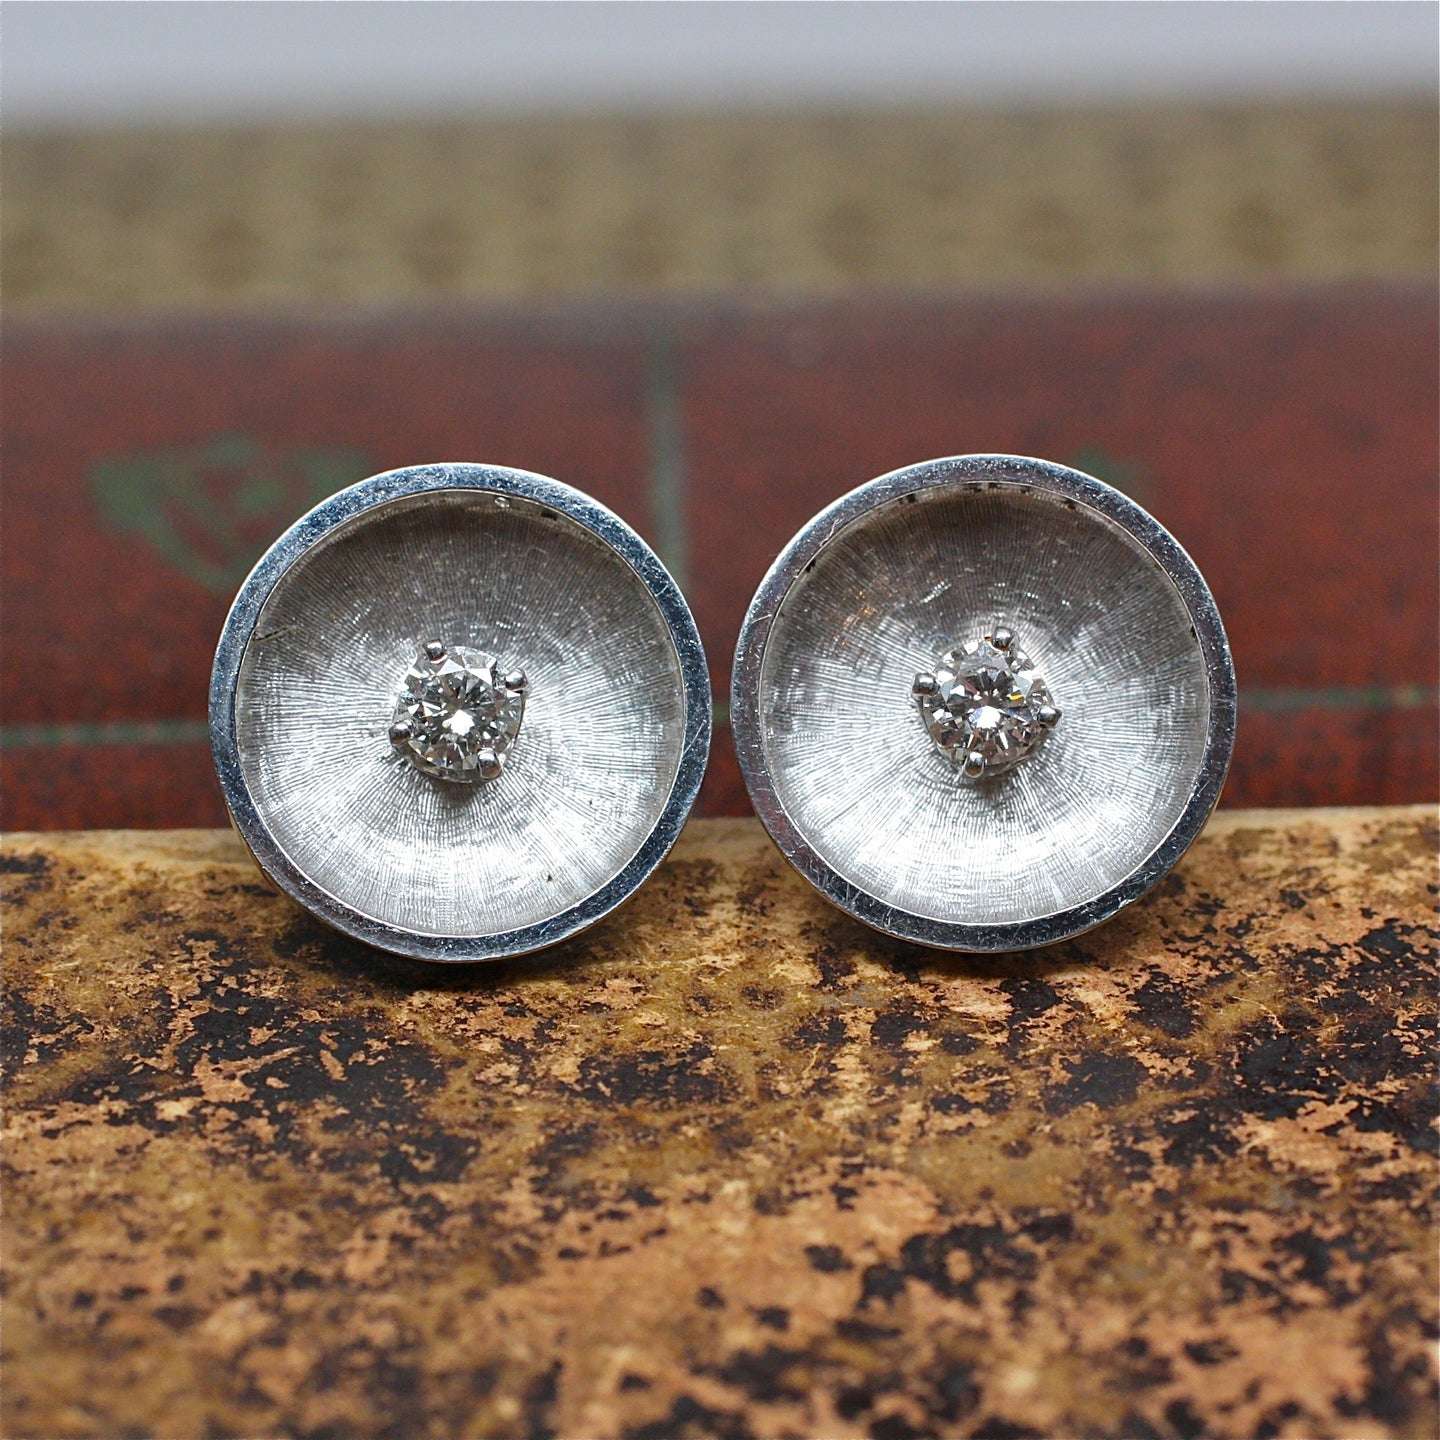 1950s Florentine Finished 14k White Gold and Diamond Cufflinks